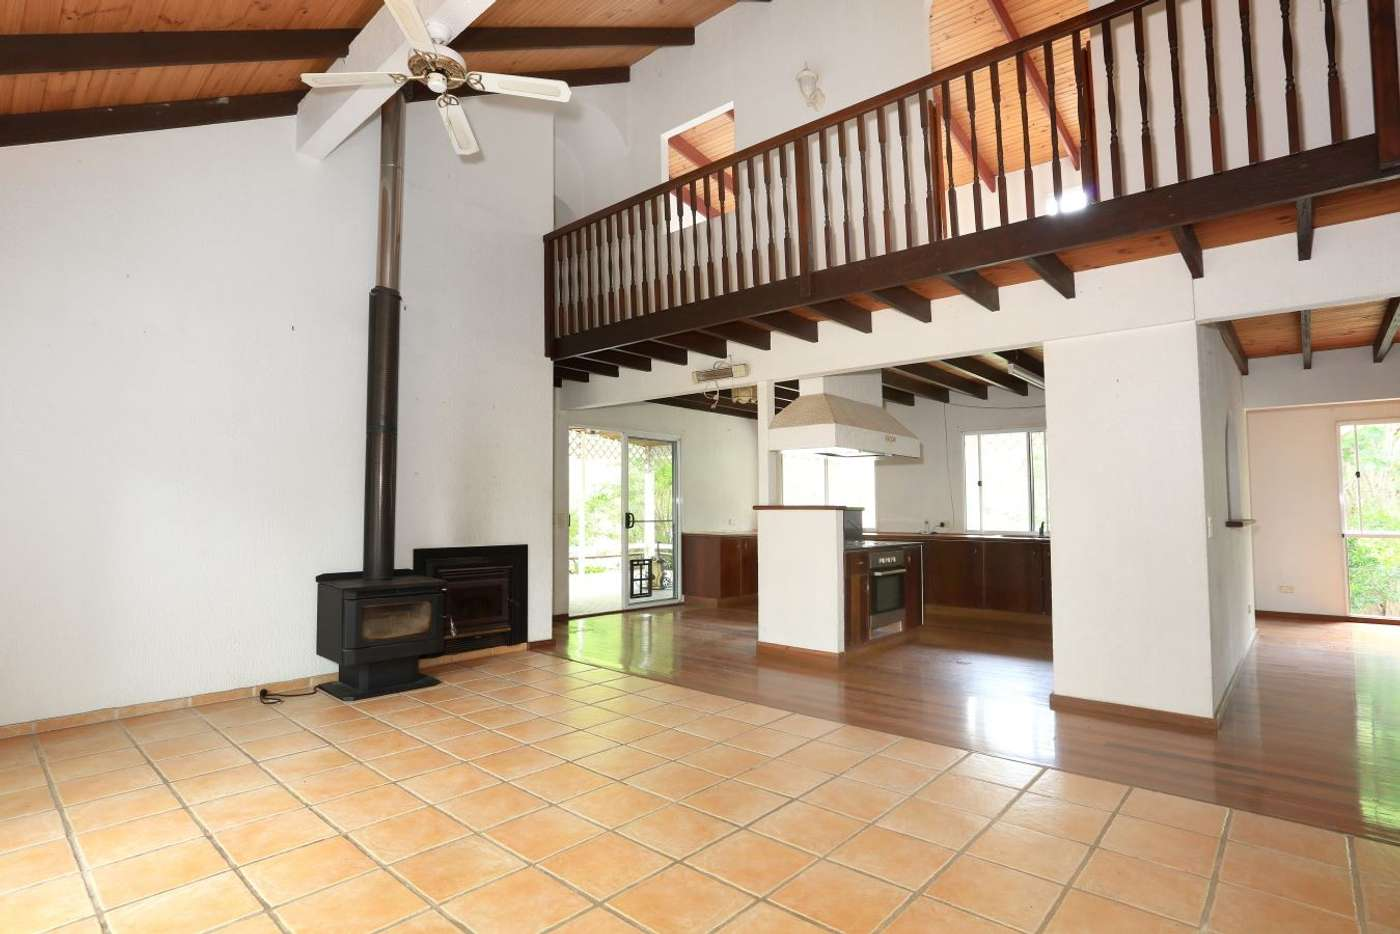 Sixth view of Homely house listing, 141 San Fernando Drive, Worongary QLD 4213